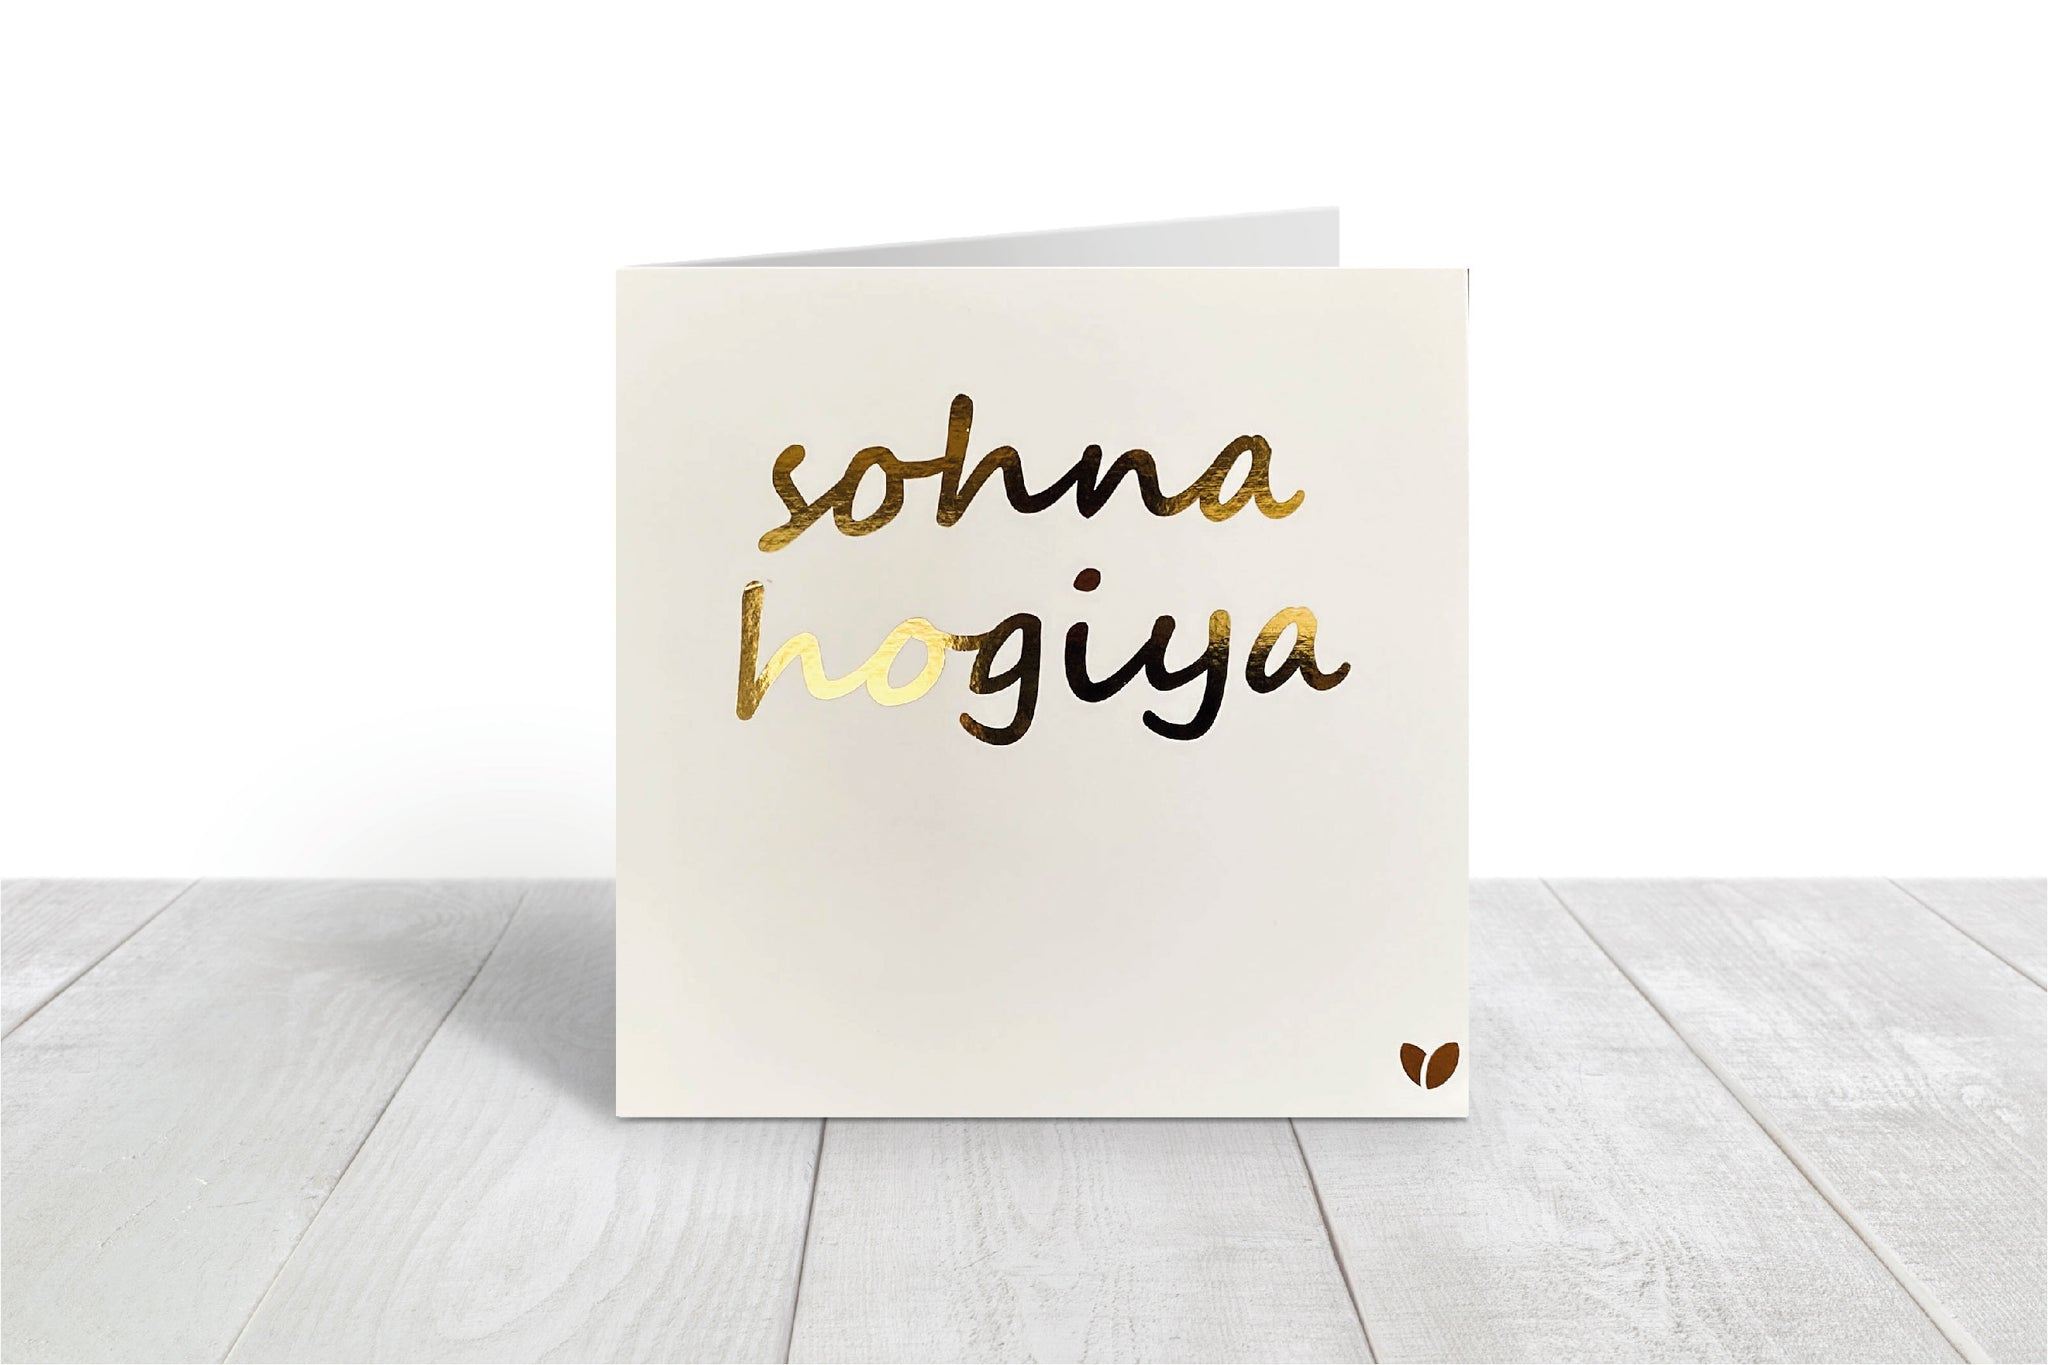 Sohna Hogiya greeting card